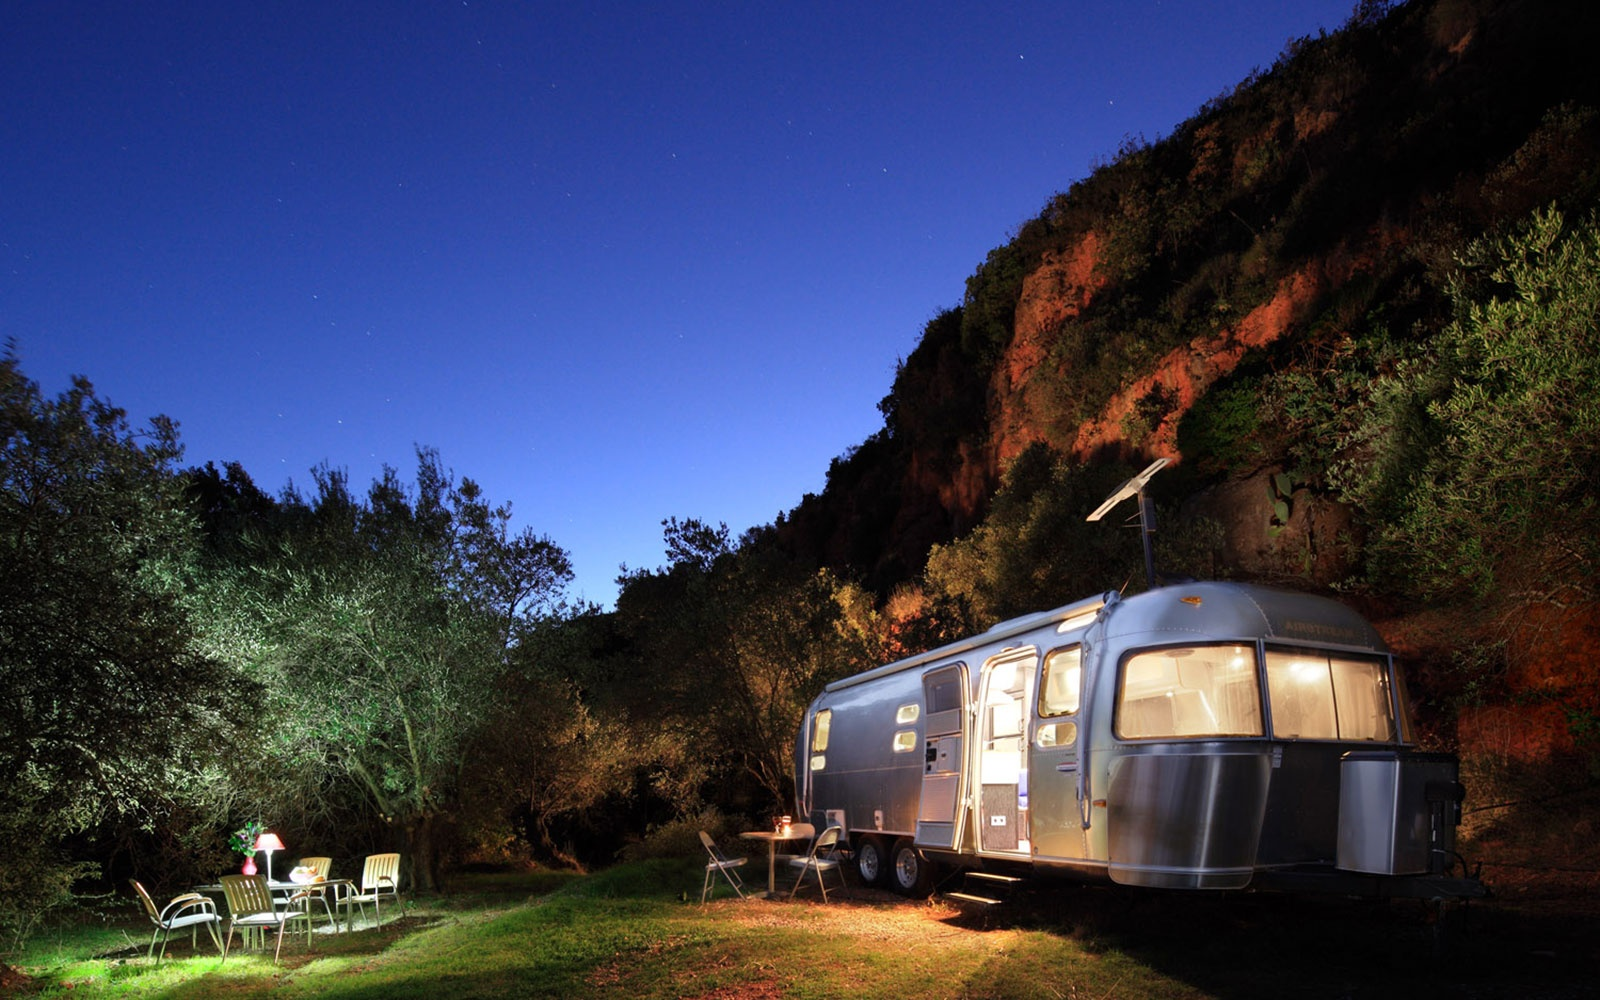 The Classic Airstream